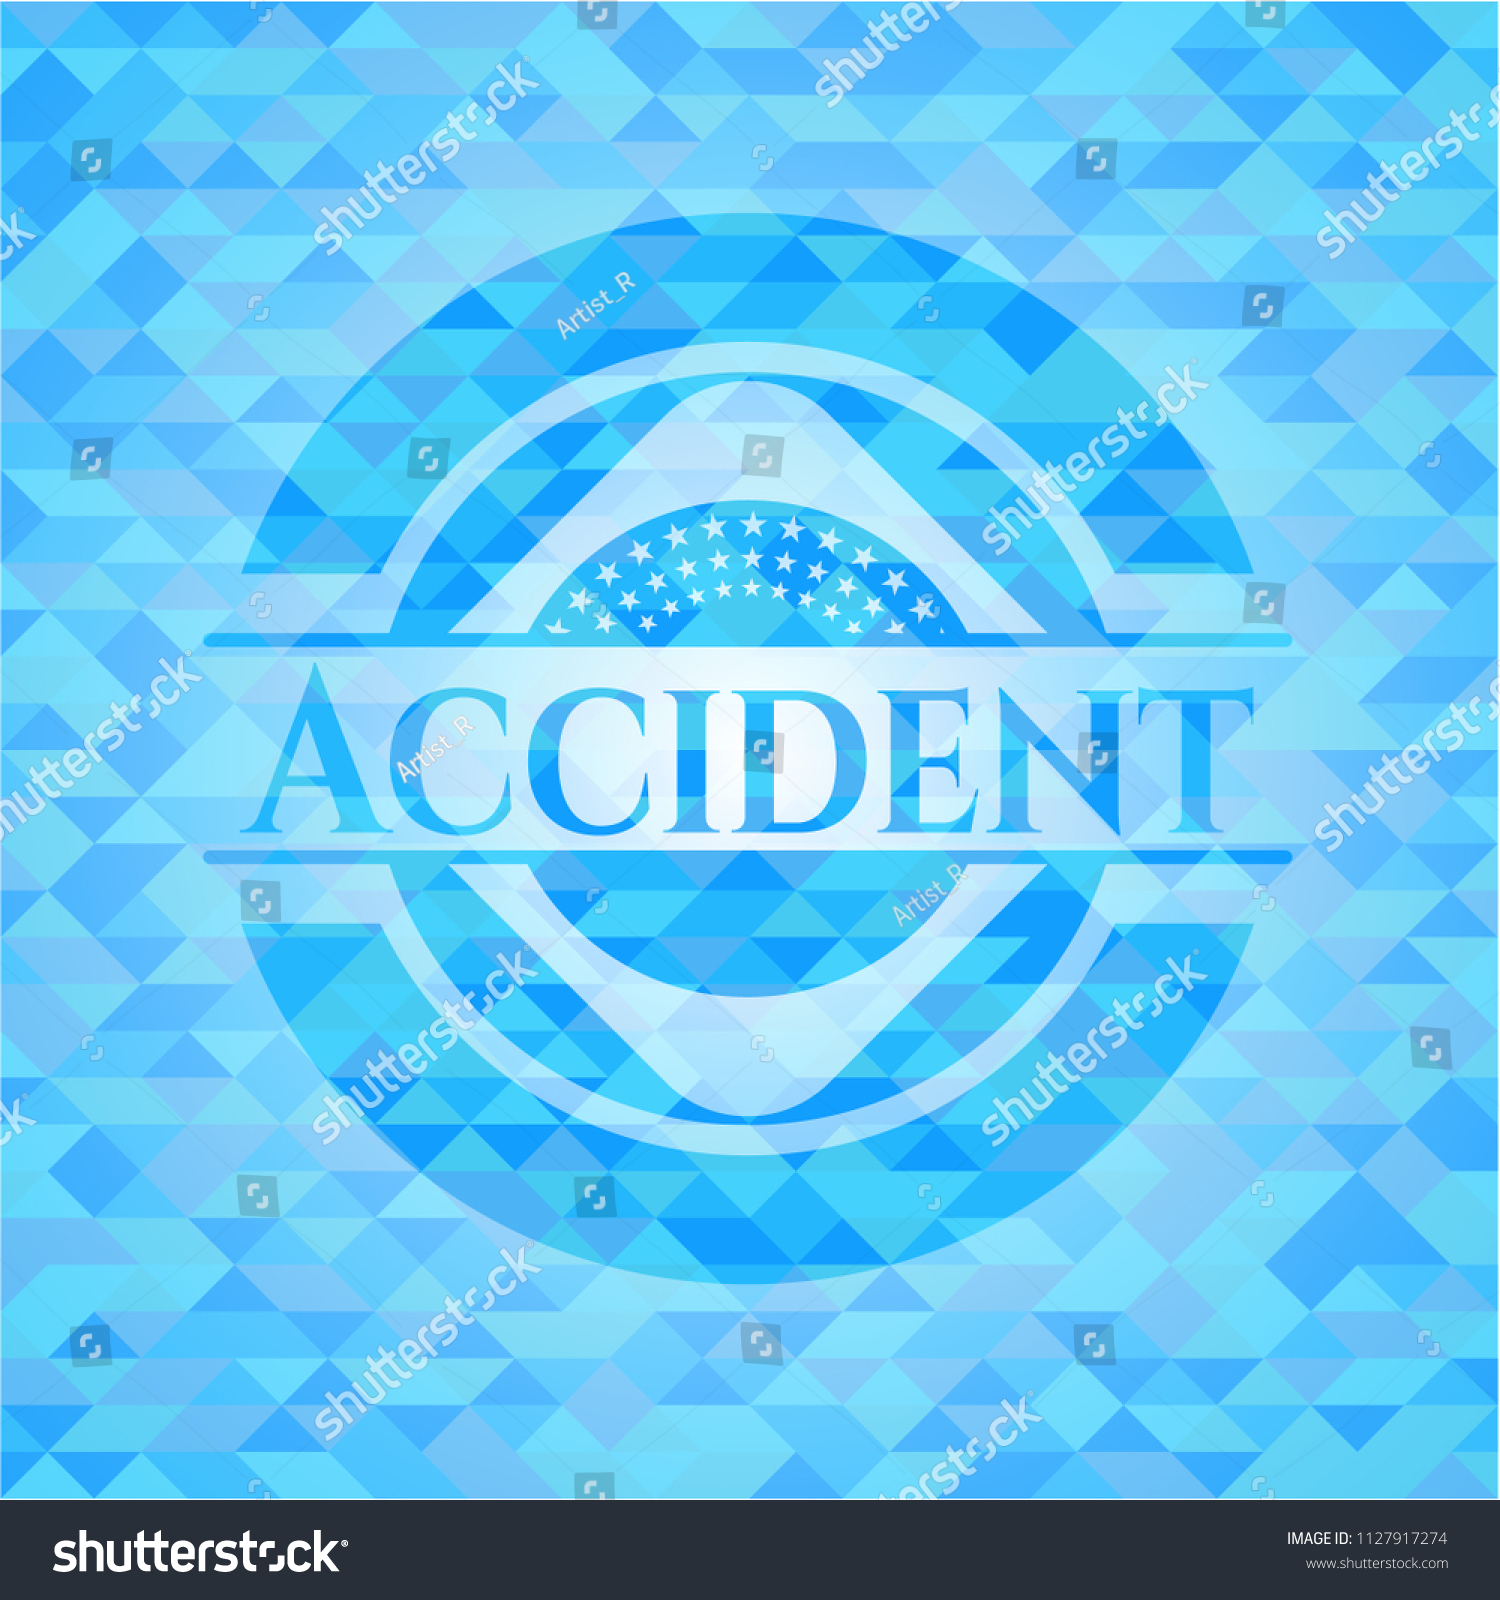 Accident Sky Blue Emblem Triangle Mosaic Stock Vector Hd Royalty